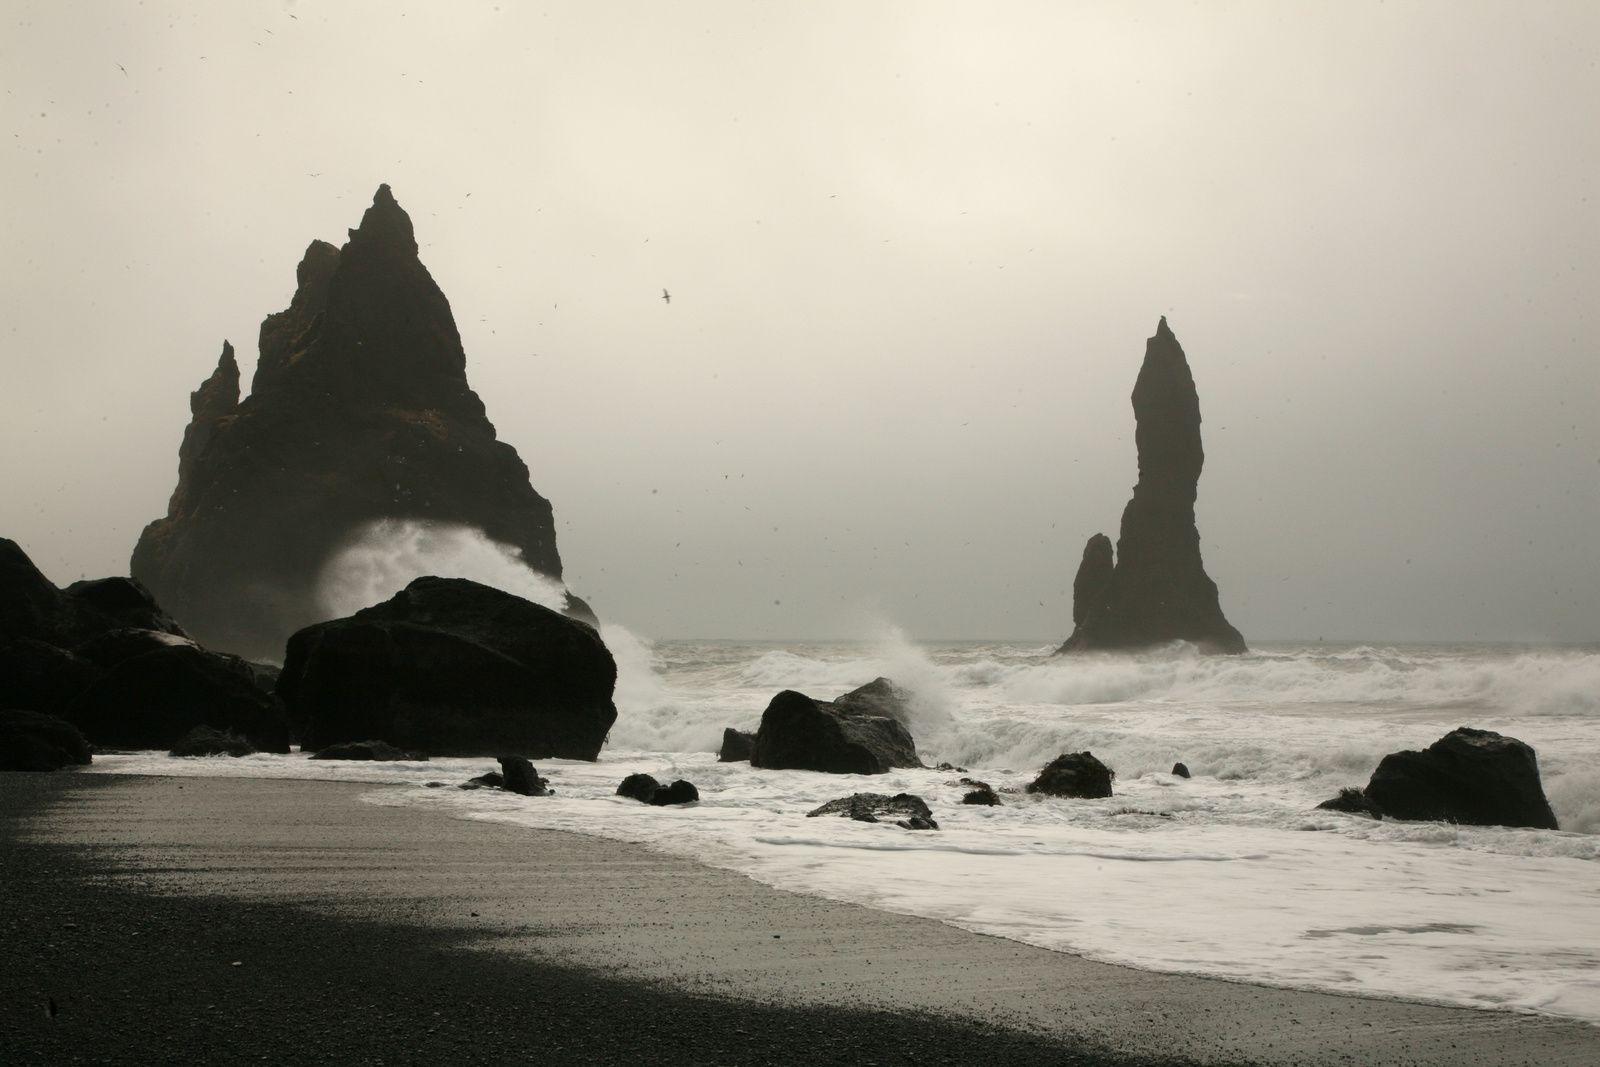 Needles of Reynisdrangar, views from the beach of Reynisfjara the next day ... drizzle and high tide - photo © 2015 Bernard Duyck